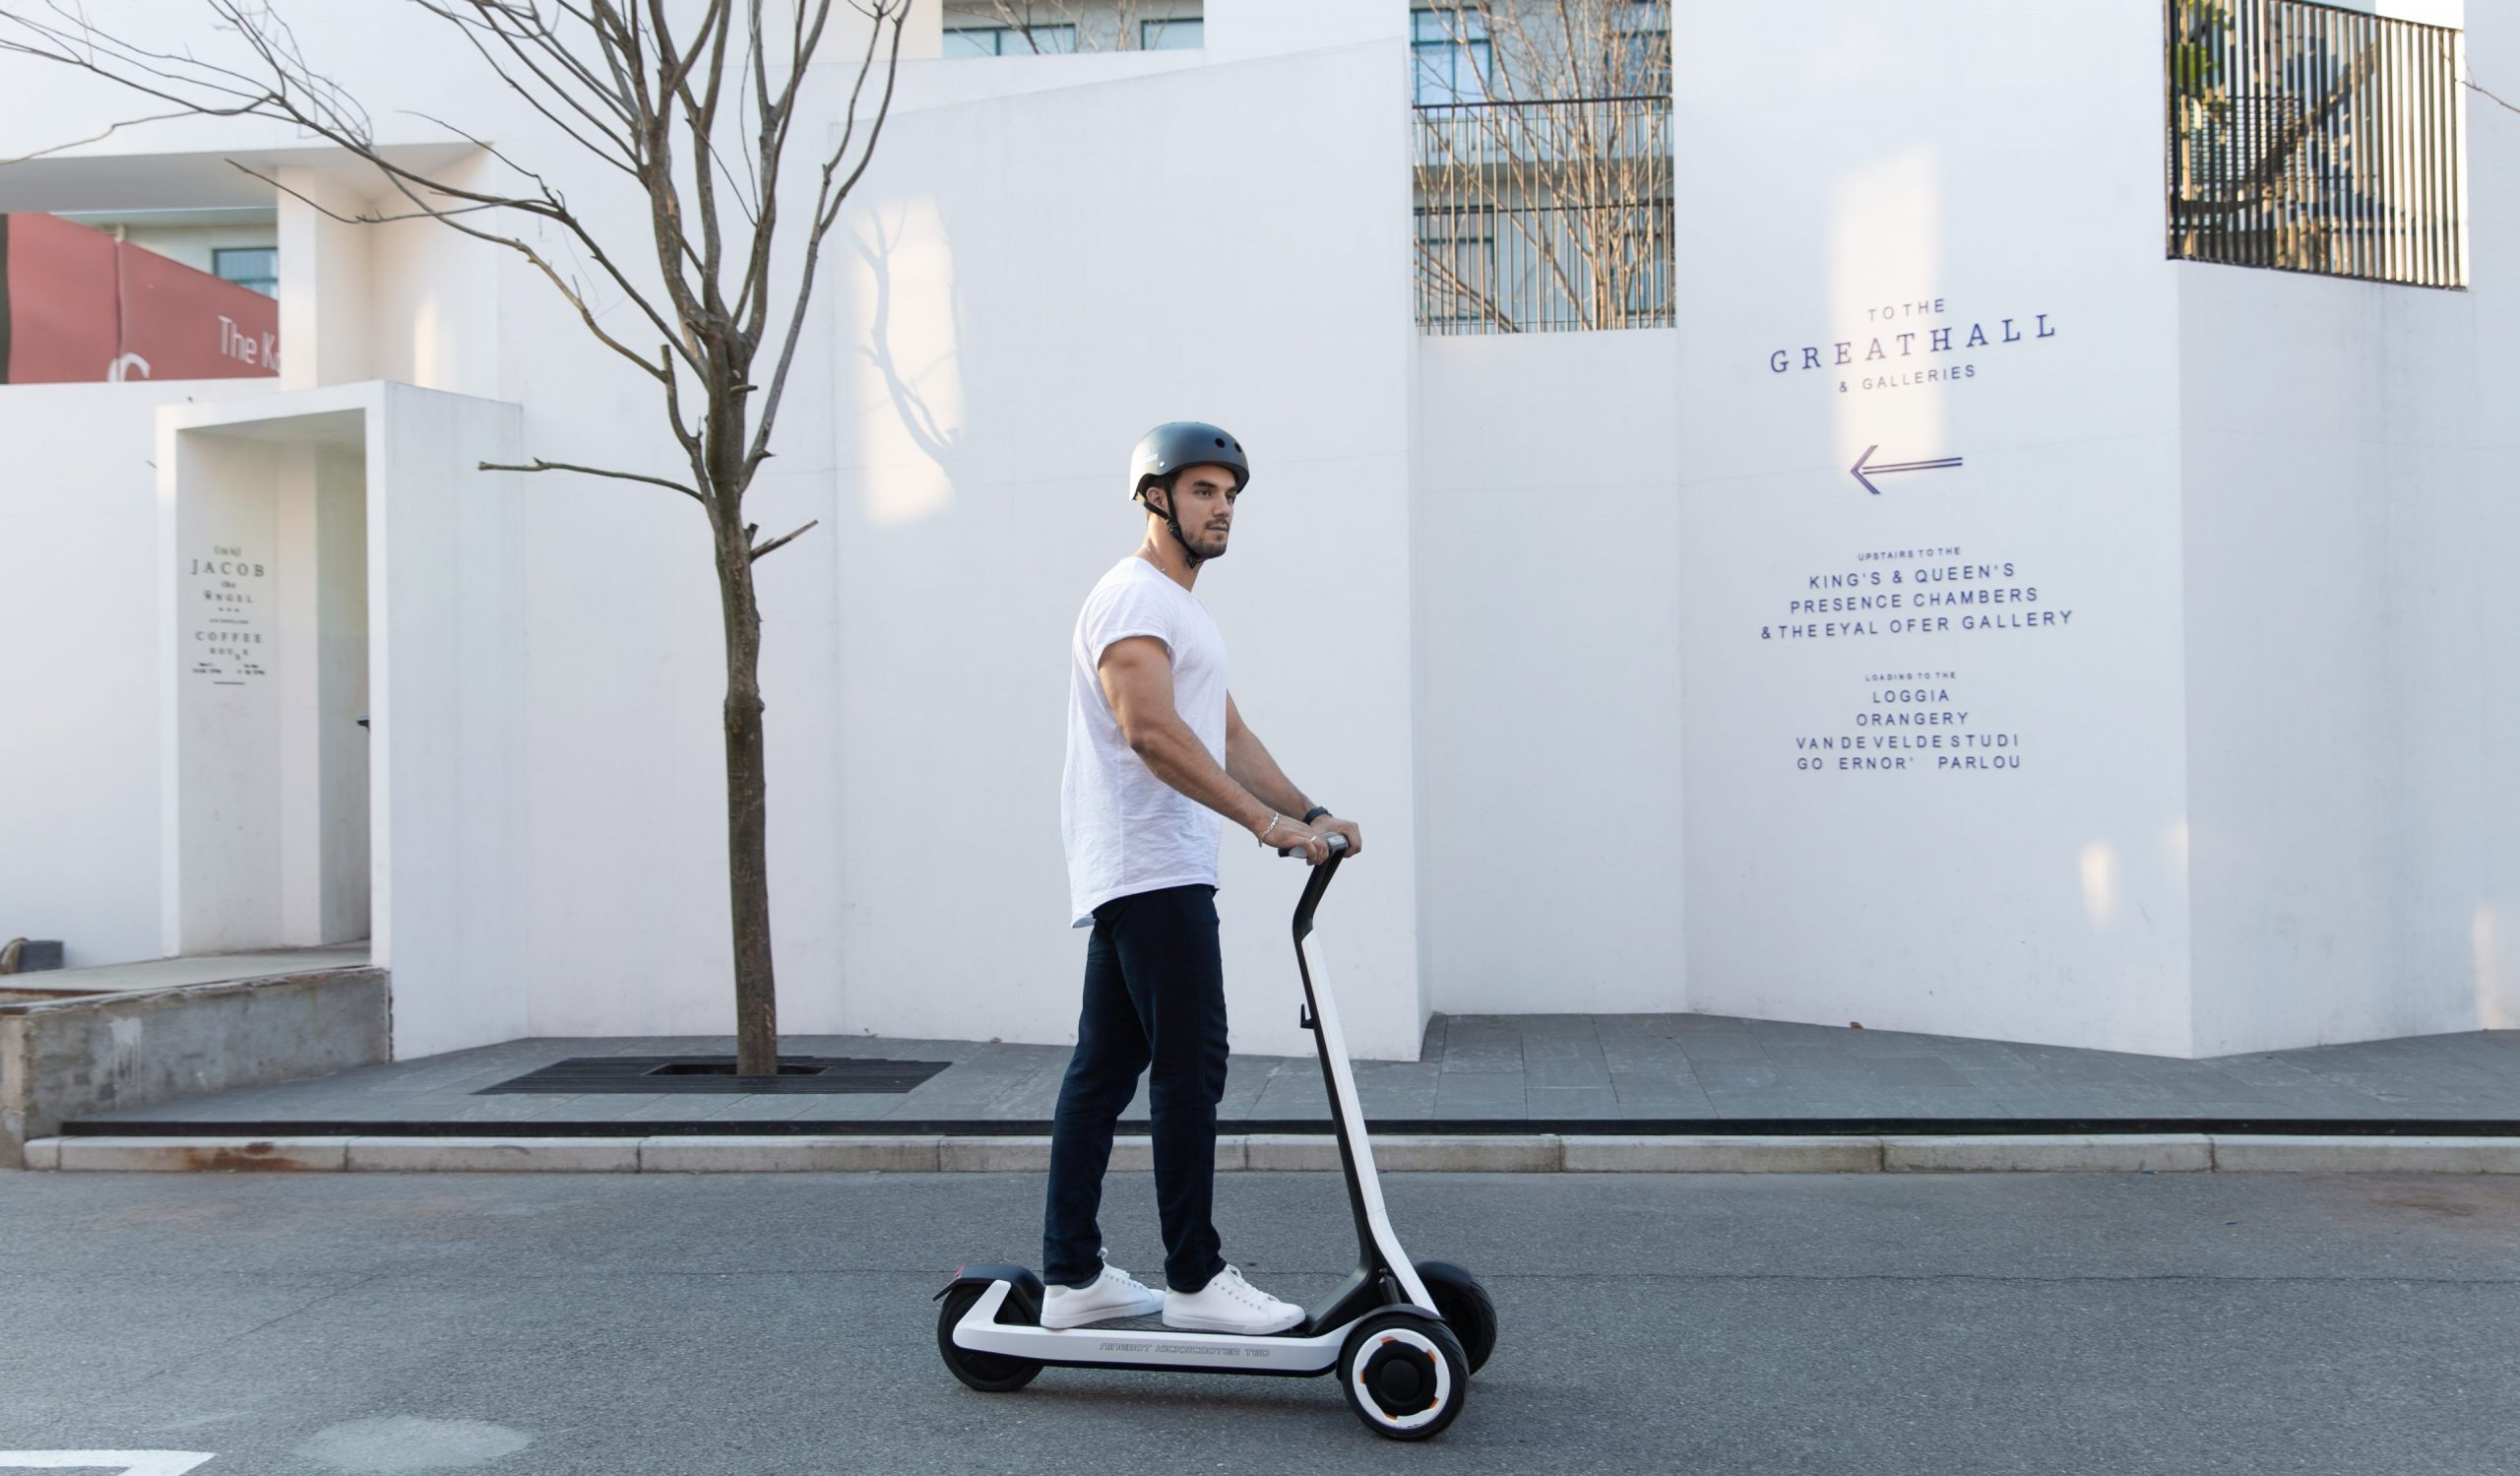 A man riding a Segway electric scooter